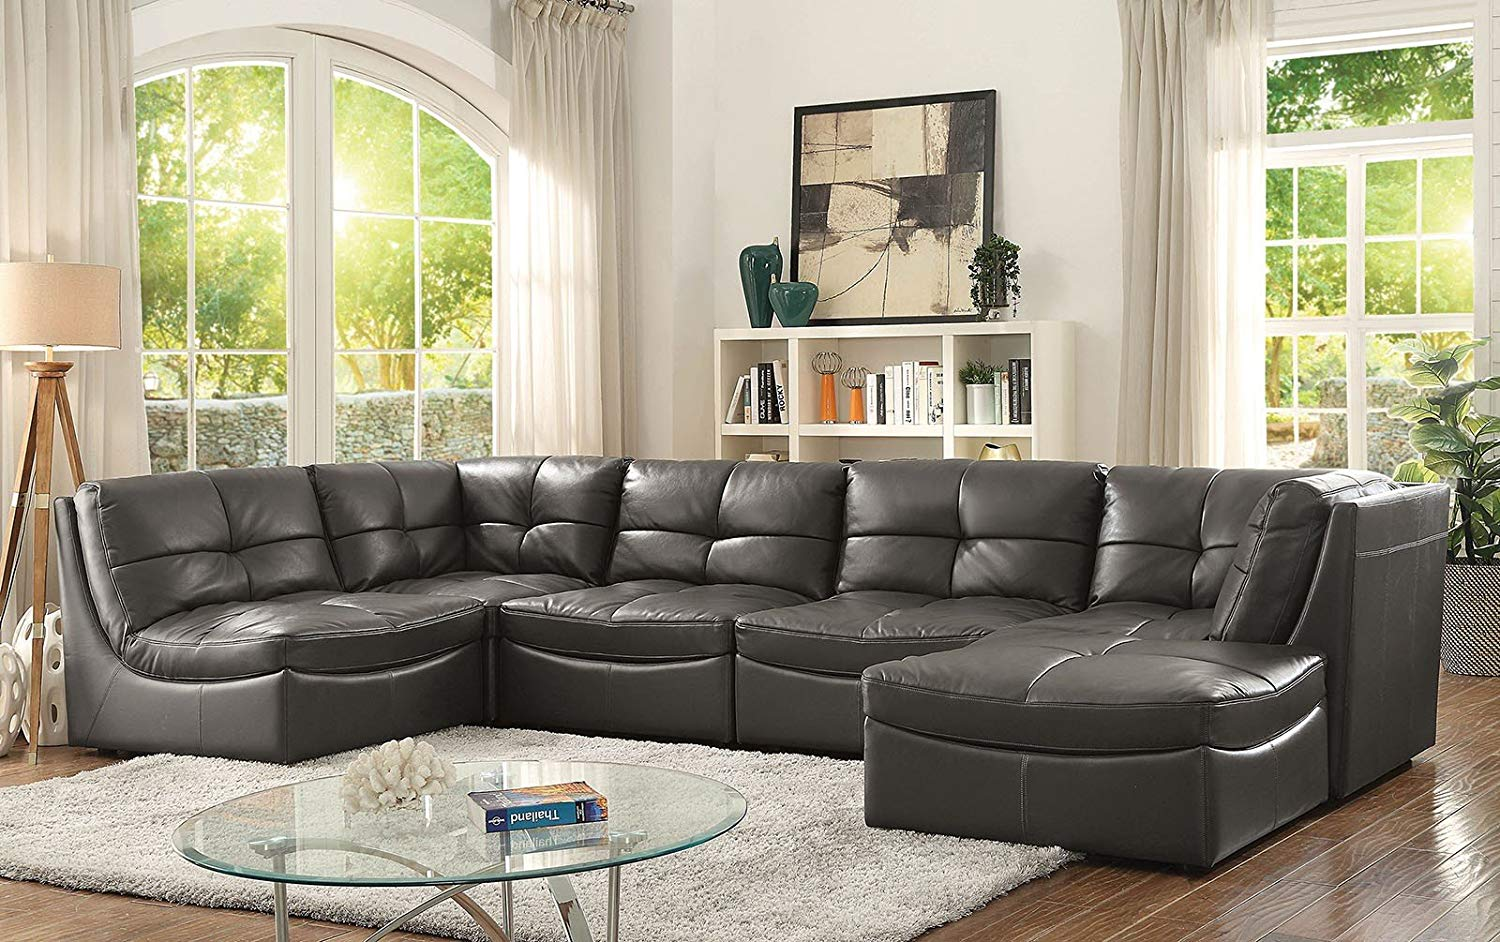 Esofa Living Room Furniture 6pc Modular Sectional Sofa Leather Gel Corner Chairs Tufted Cushion Couch